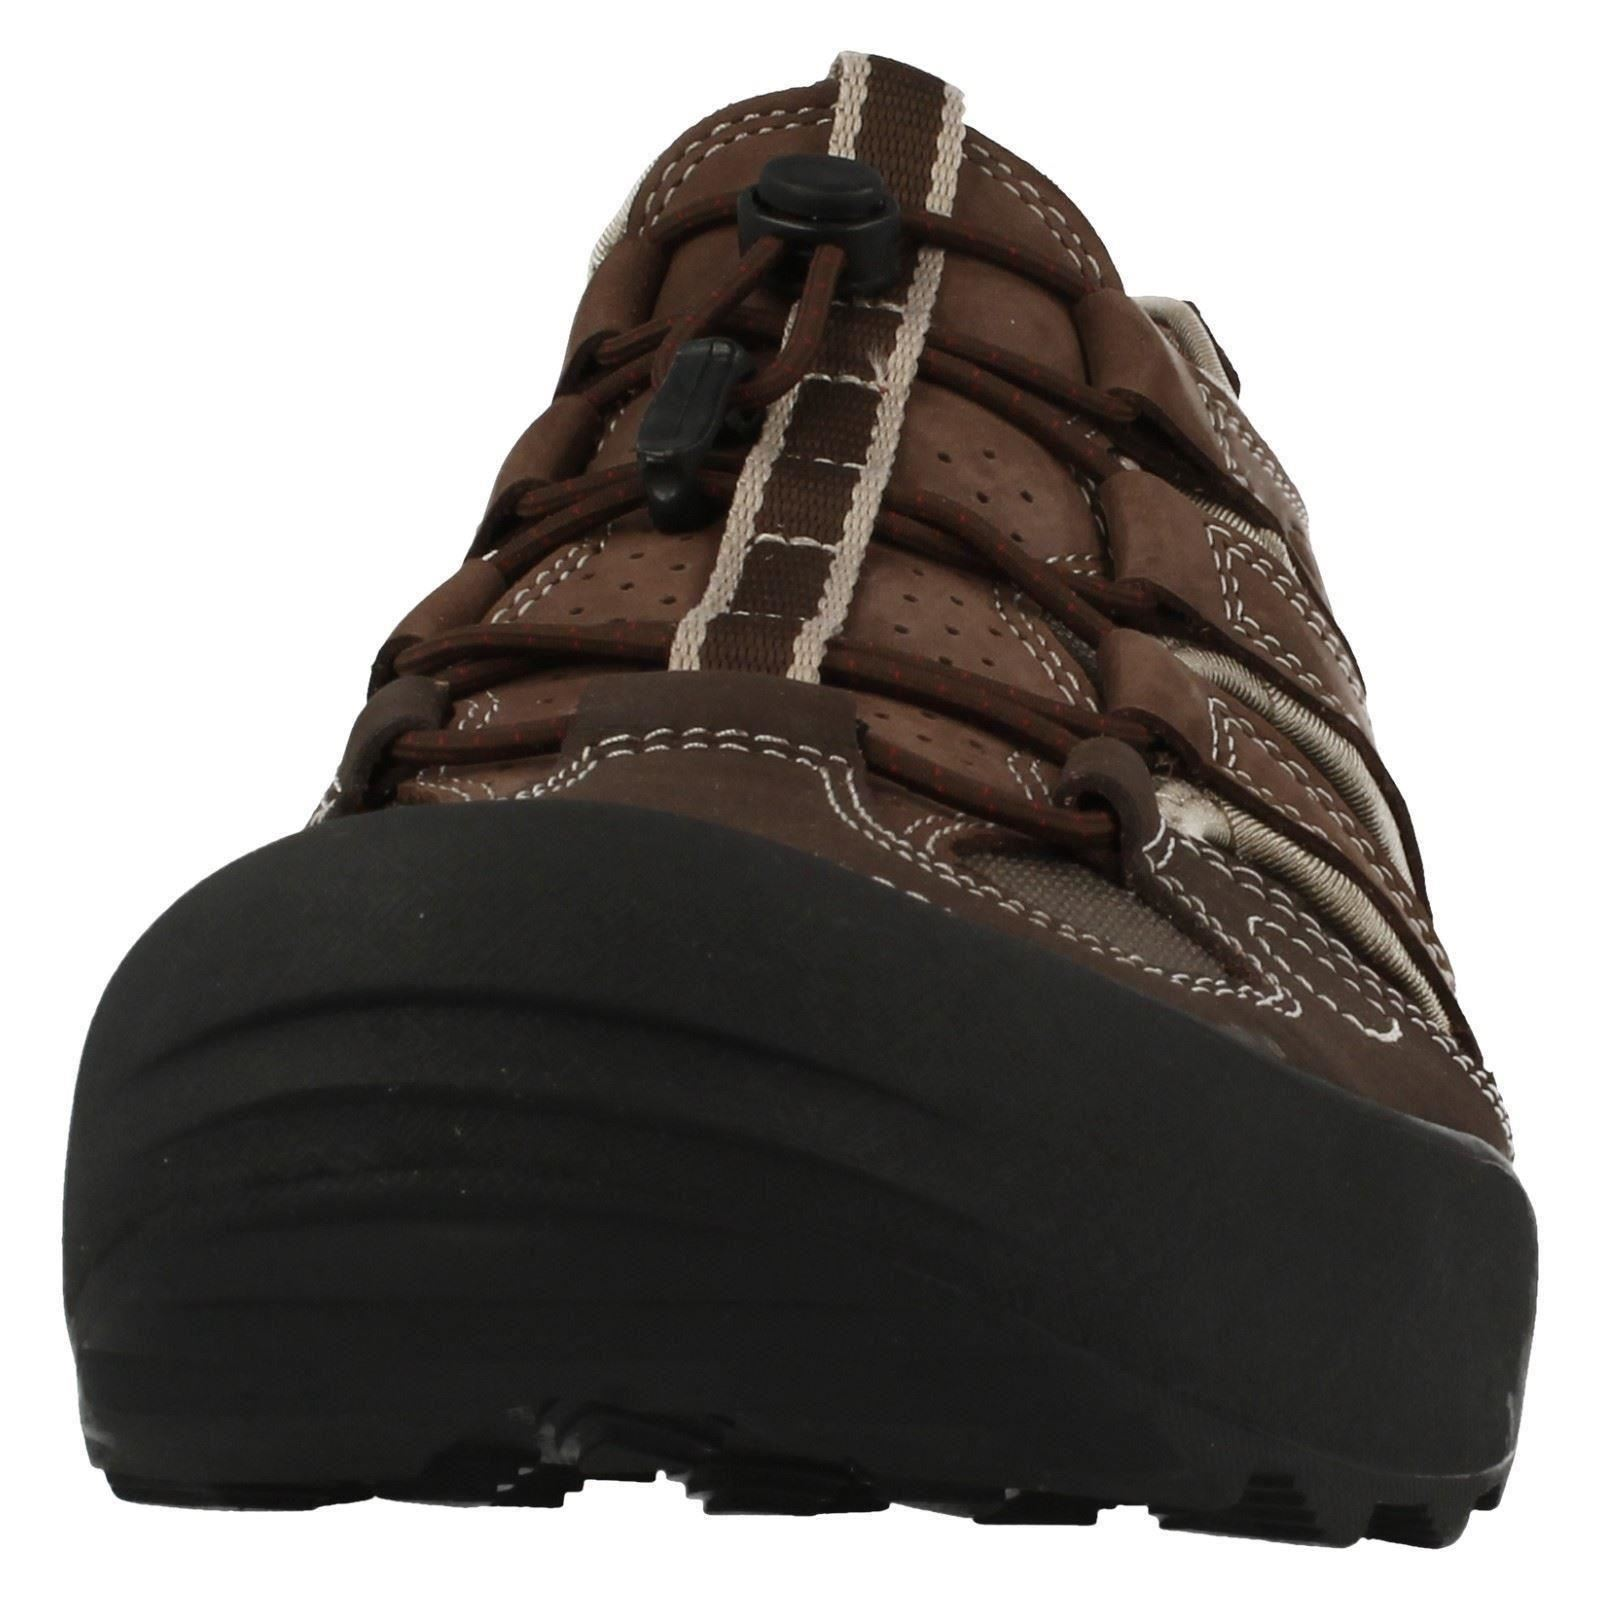 9e75cb695b1 Clarks Mens Active Wear Closed Toe Sandals Outlay Cove